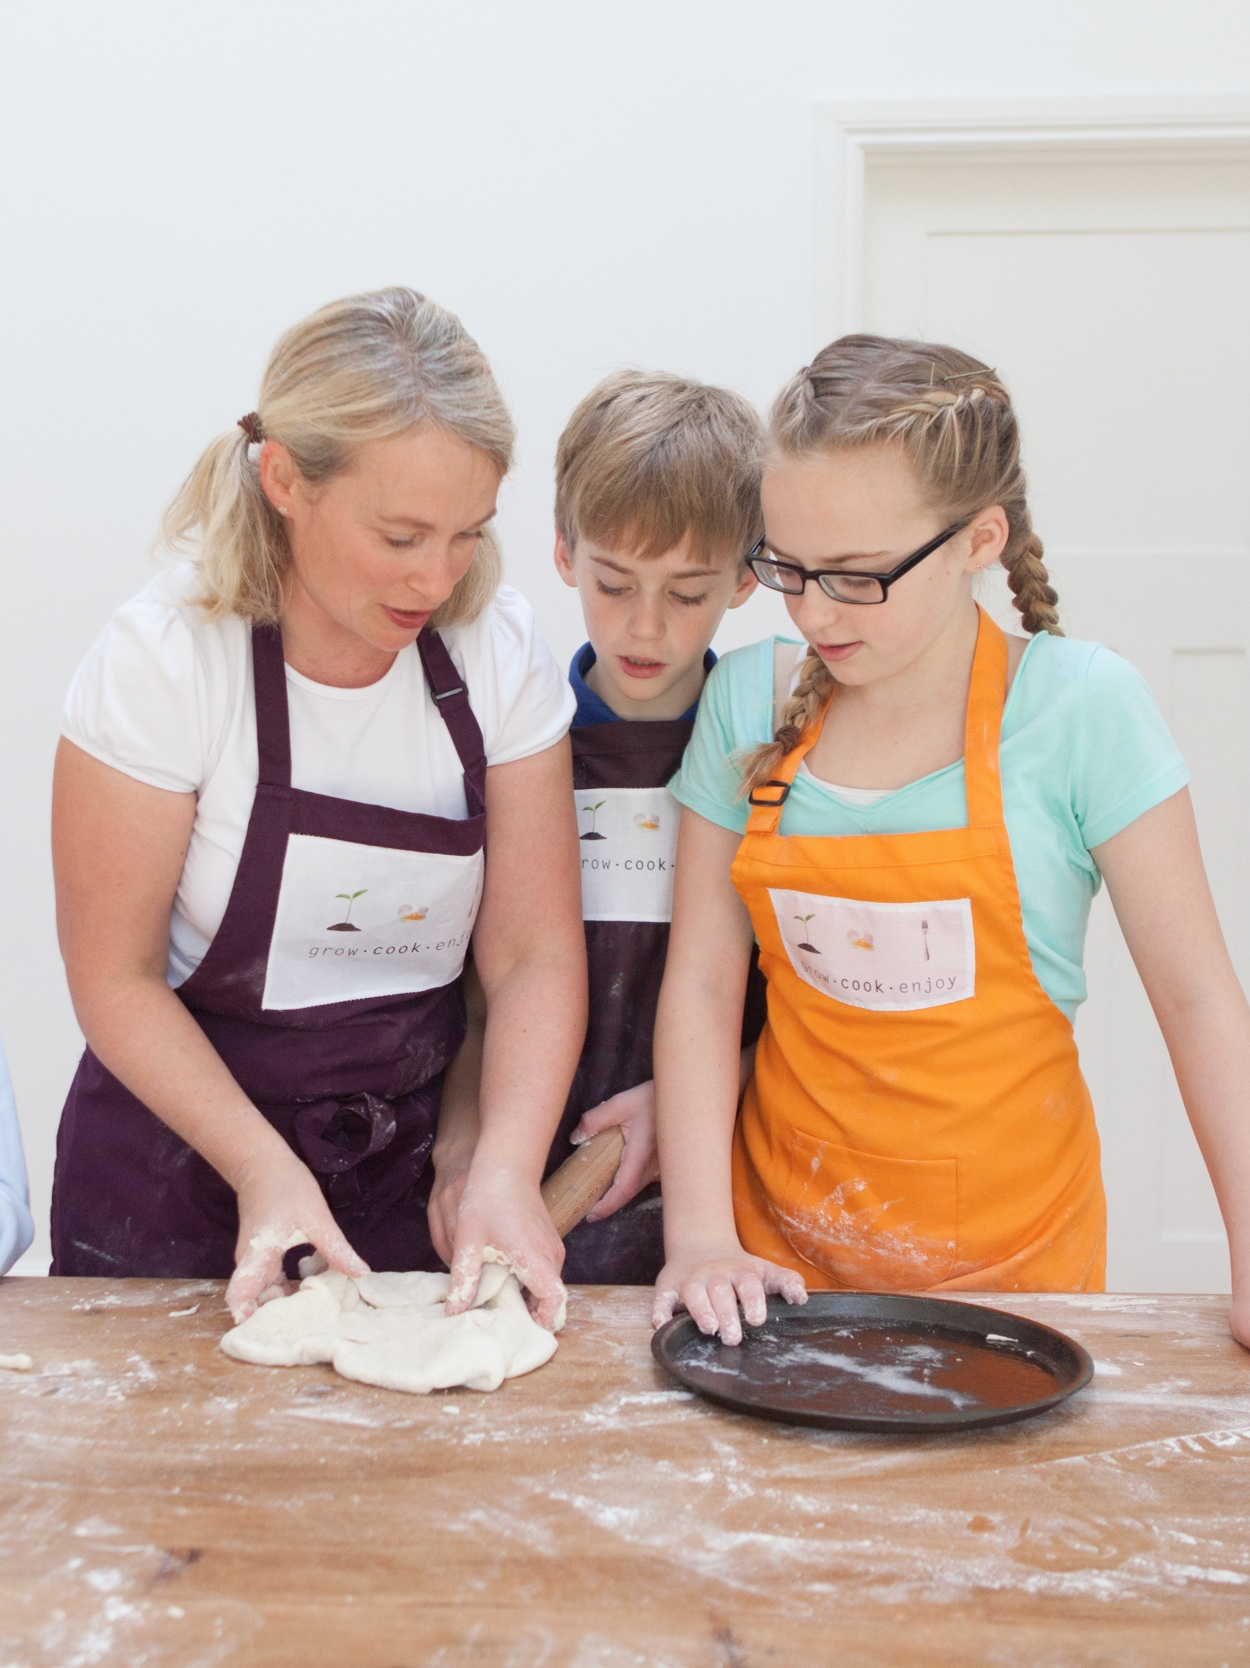 Jayne McGhee Teaching a Grow Cook Enjoy Class with children of different ages